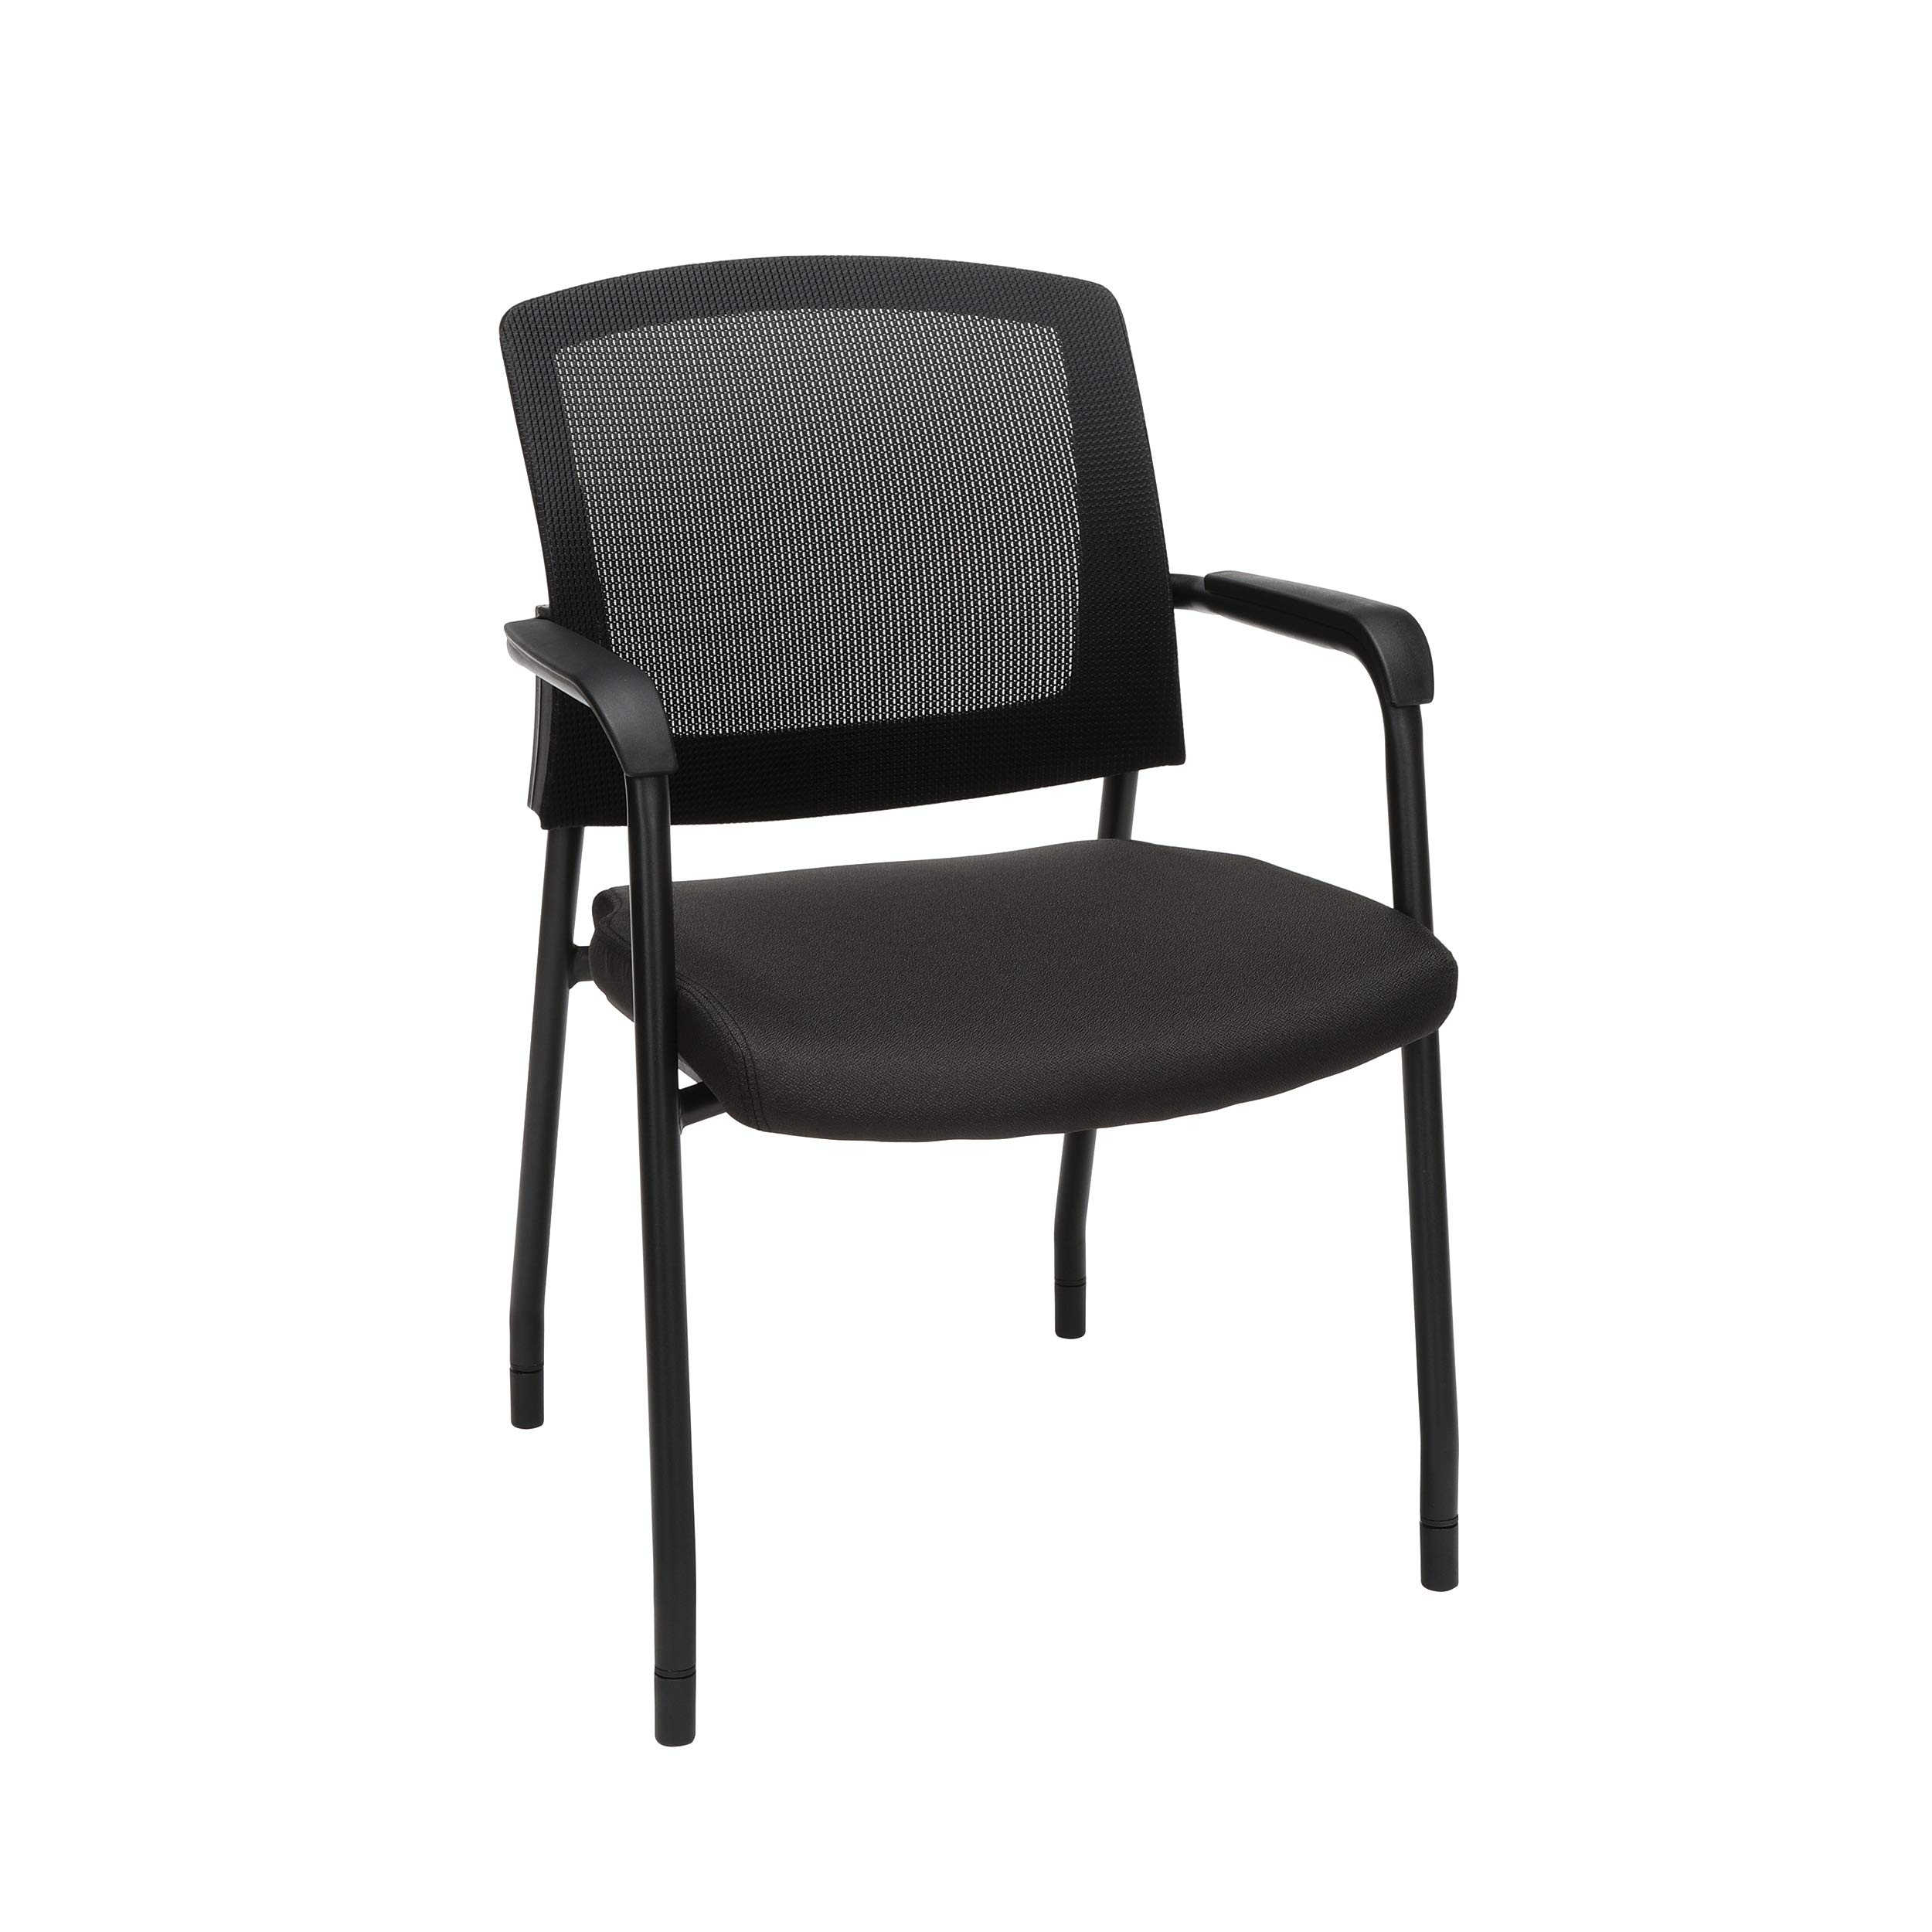 OFM 424-805 Model 424 Mesh Chair Guest/Reception Chair with Arms, 33.25'' Height, 22.5'' Wide, 24'' Length, Trim, Black Leg